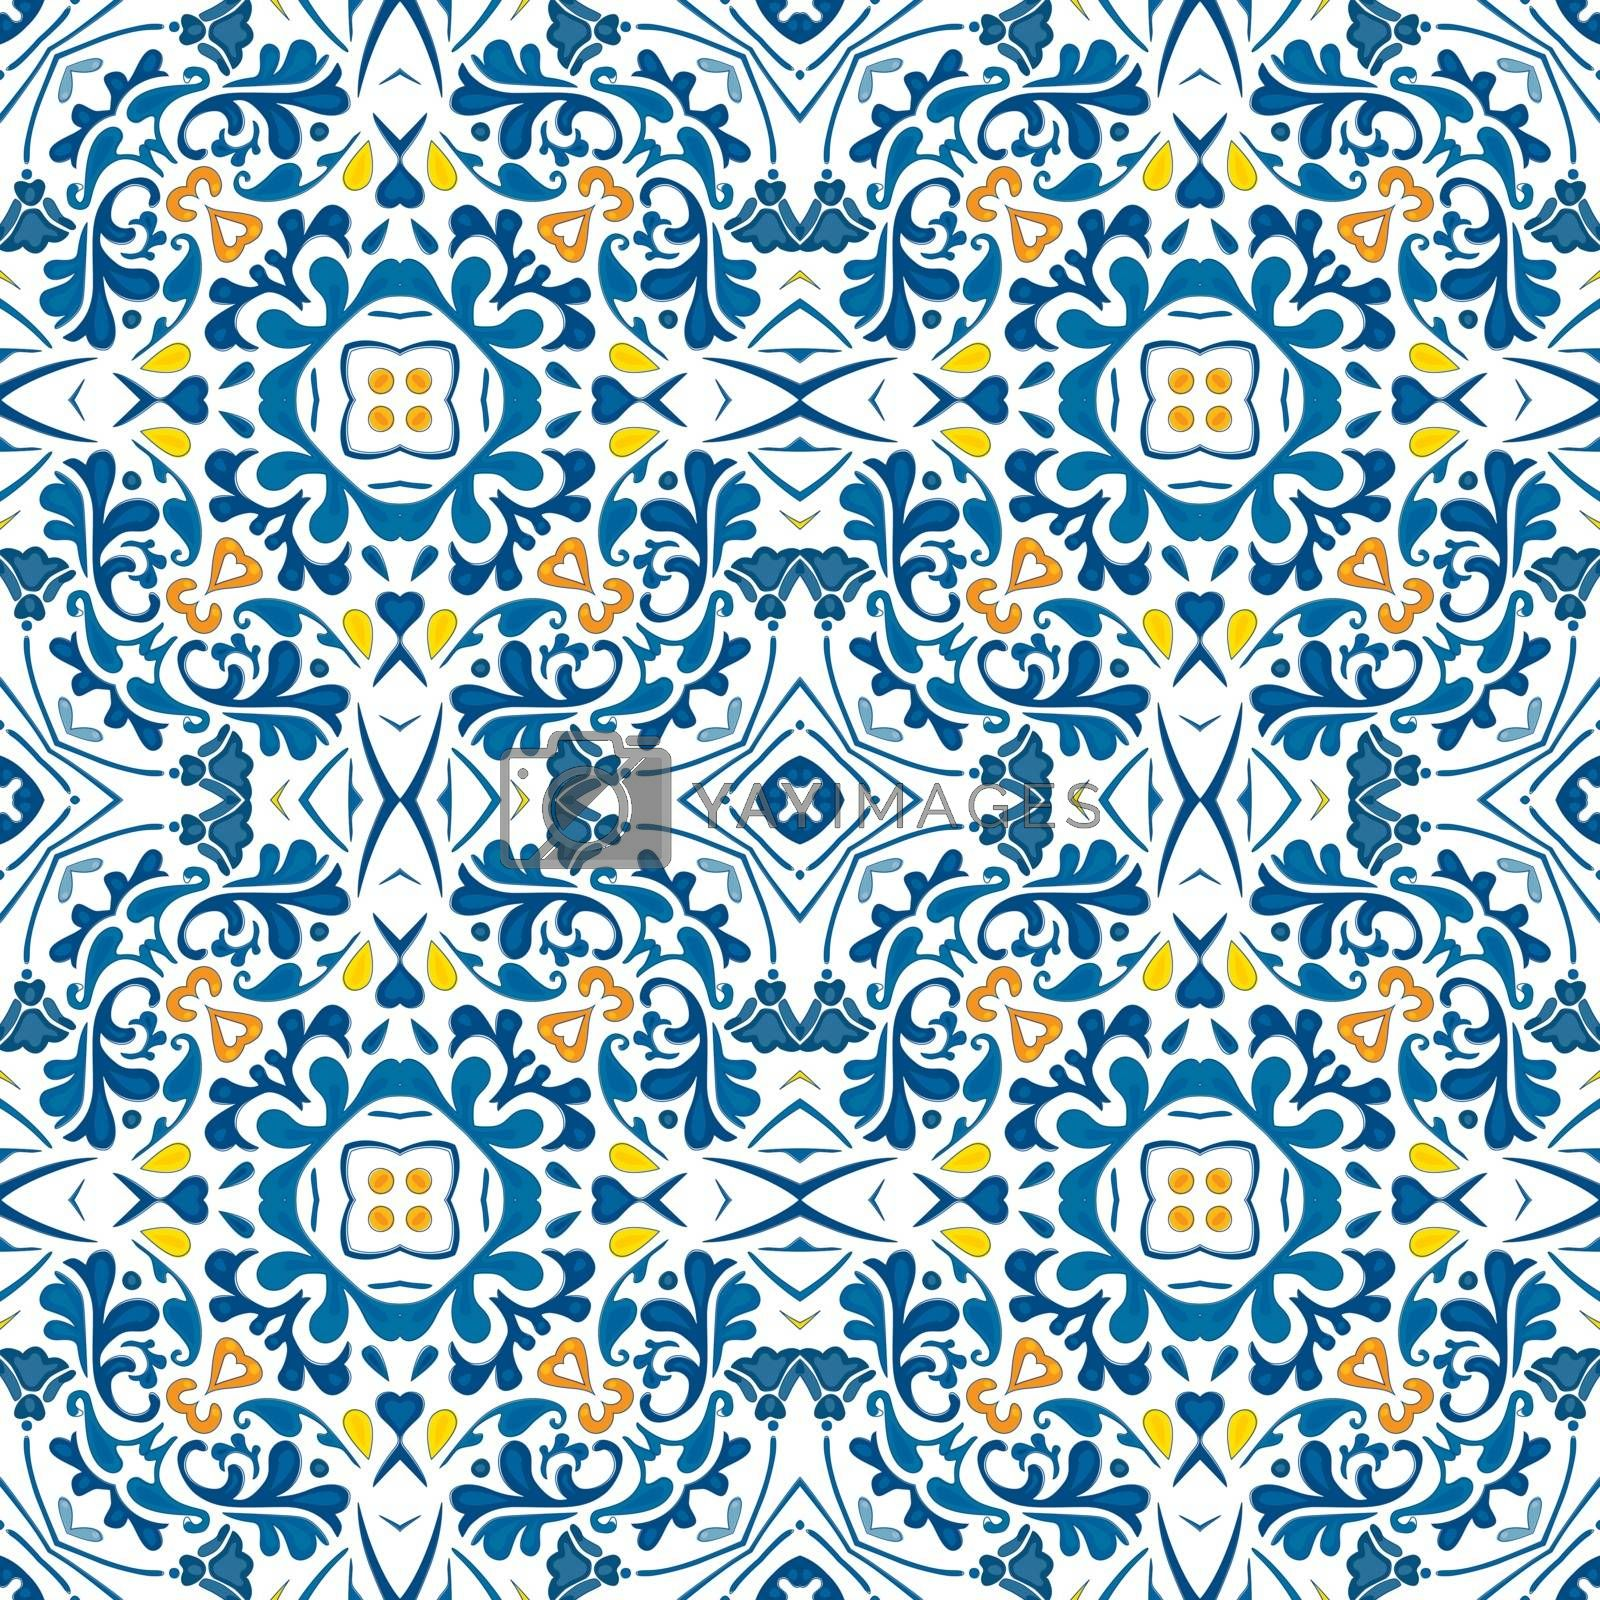 Royalty free image of Portuguese tiles by nahhan